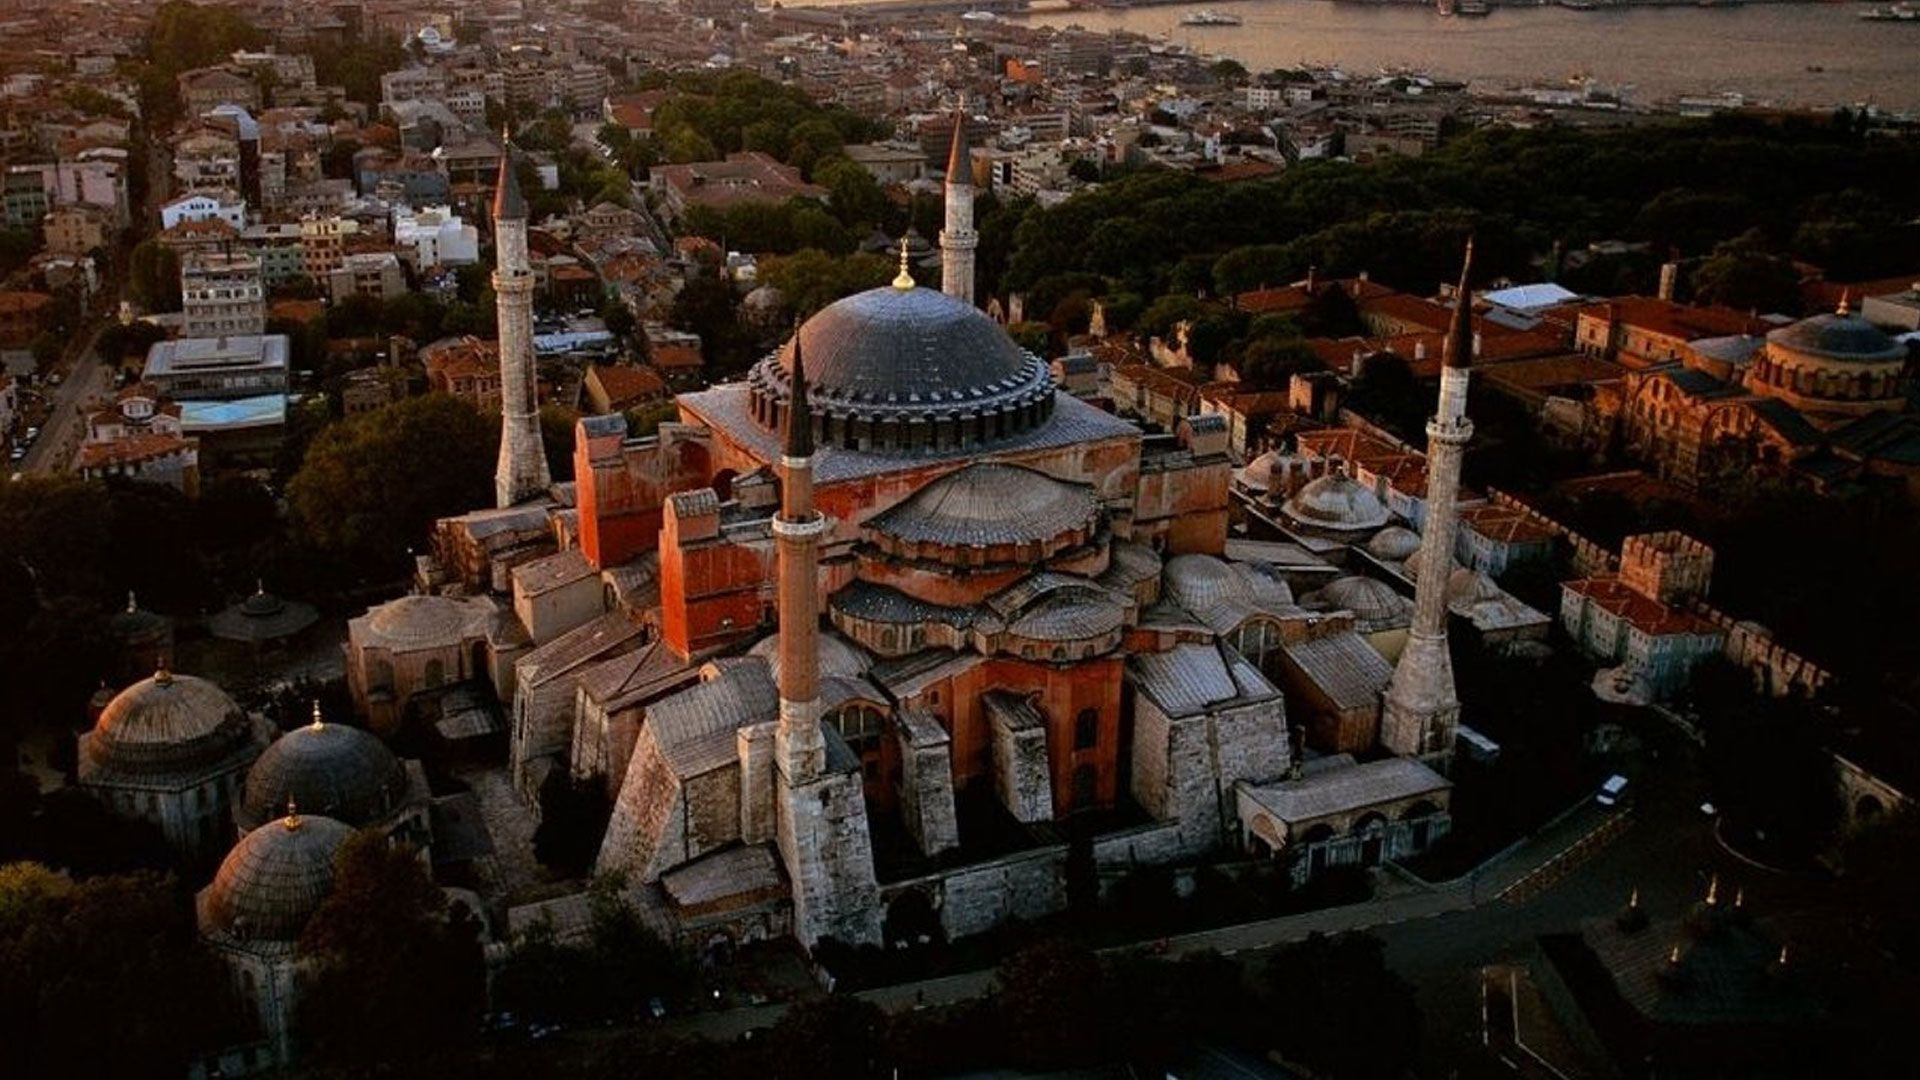 wallpaper-Hagia-sophia-is-a-unique-Turkey-Wallpaper.jpg (1920×1080)